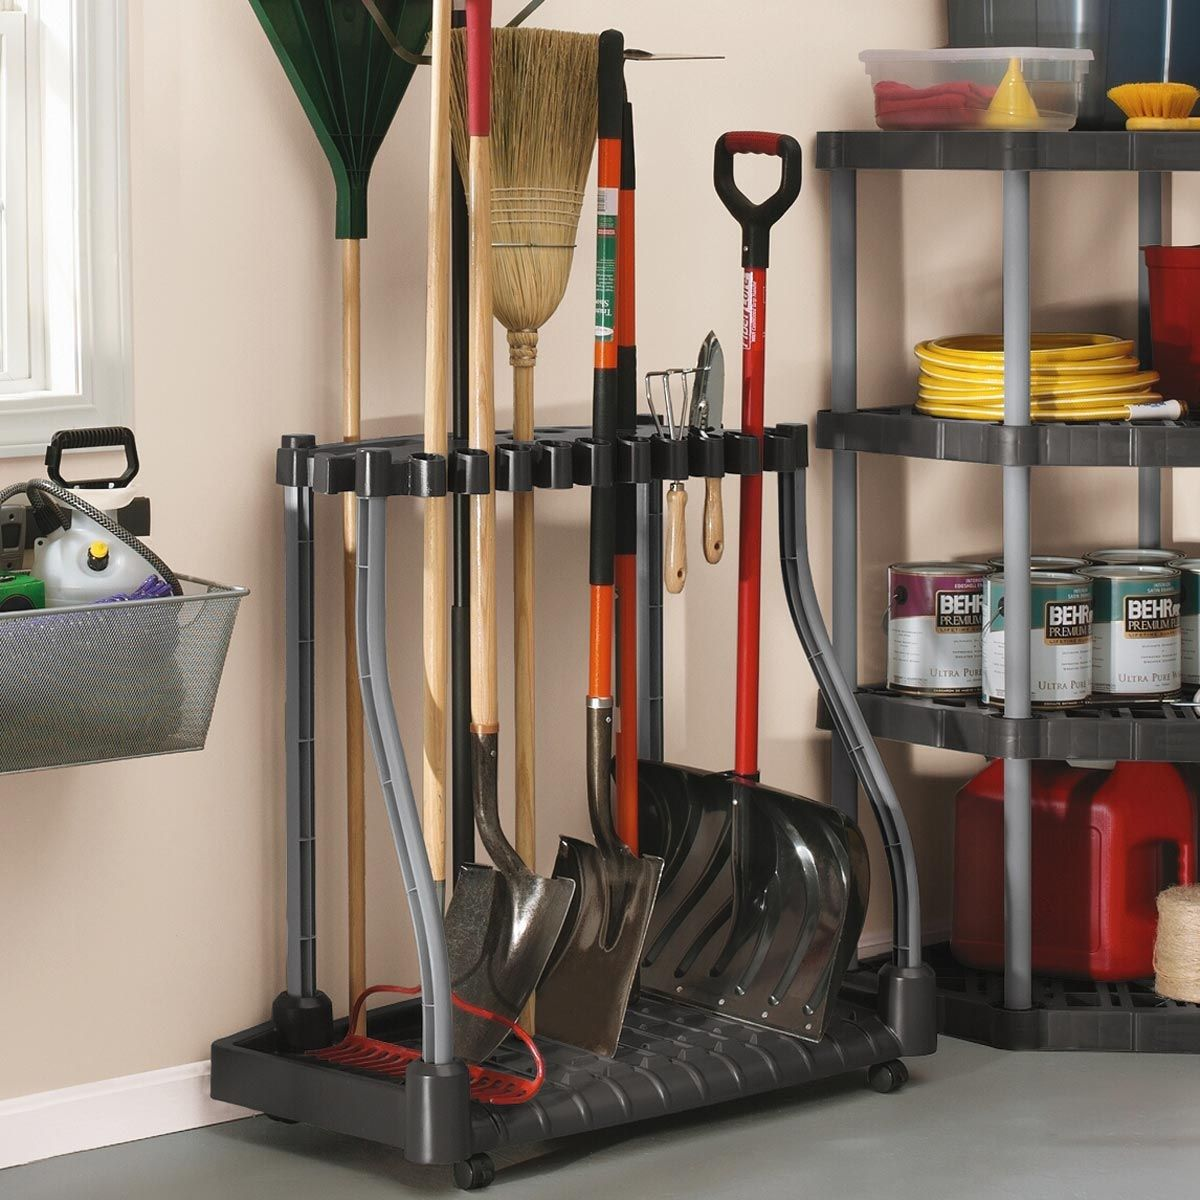 10 ideas for hanging garden tools most of the brilliant on inspiring diy garage storage design ideas on a budget to maximize your garage id=21802